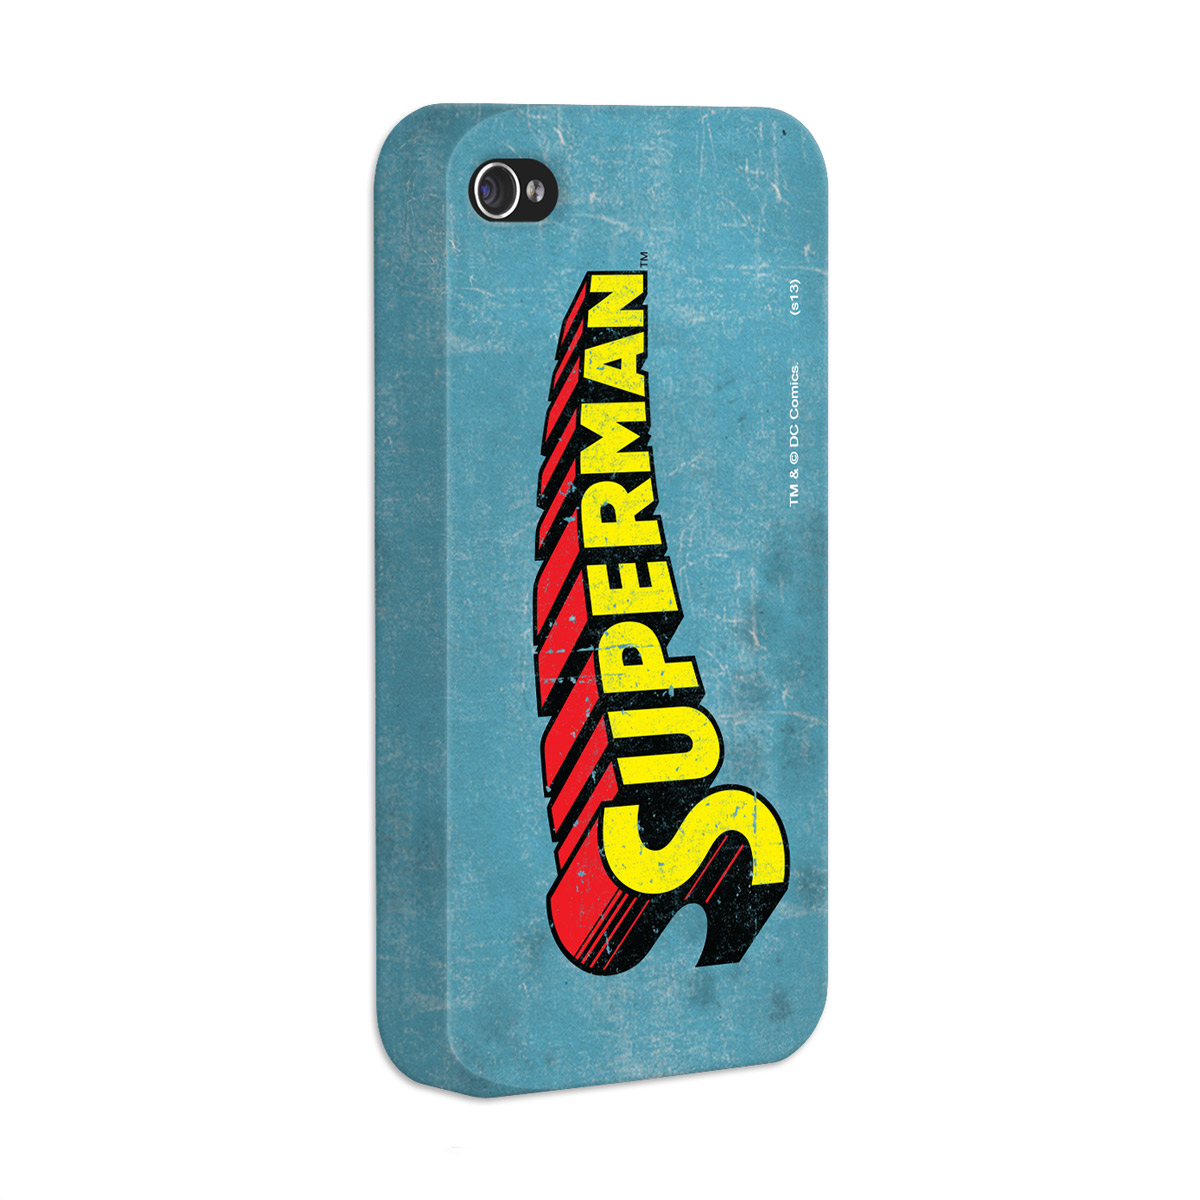 Capa de iPhone 4/4S Superman - Logo Classico